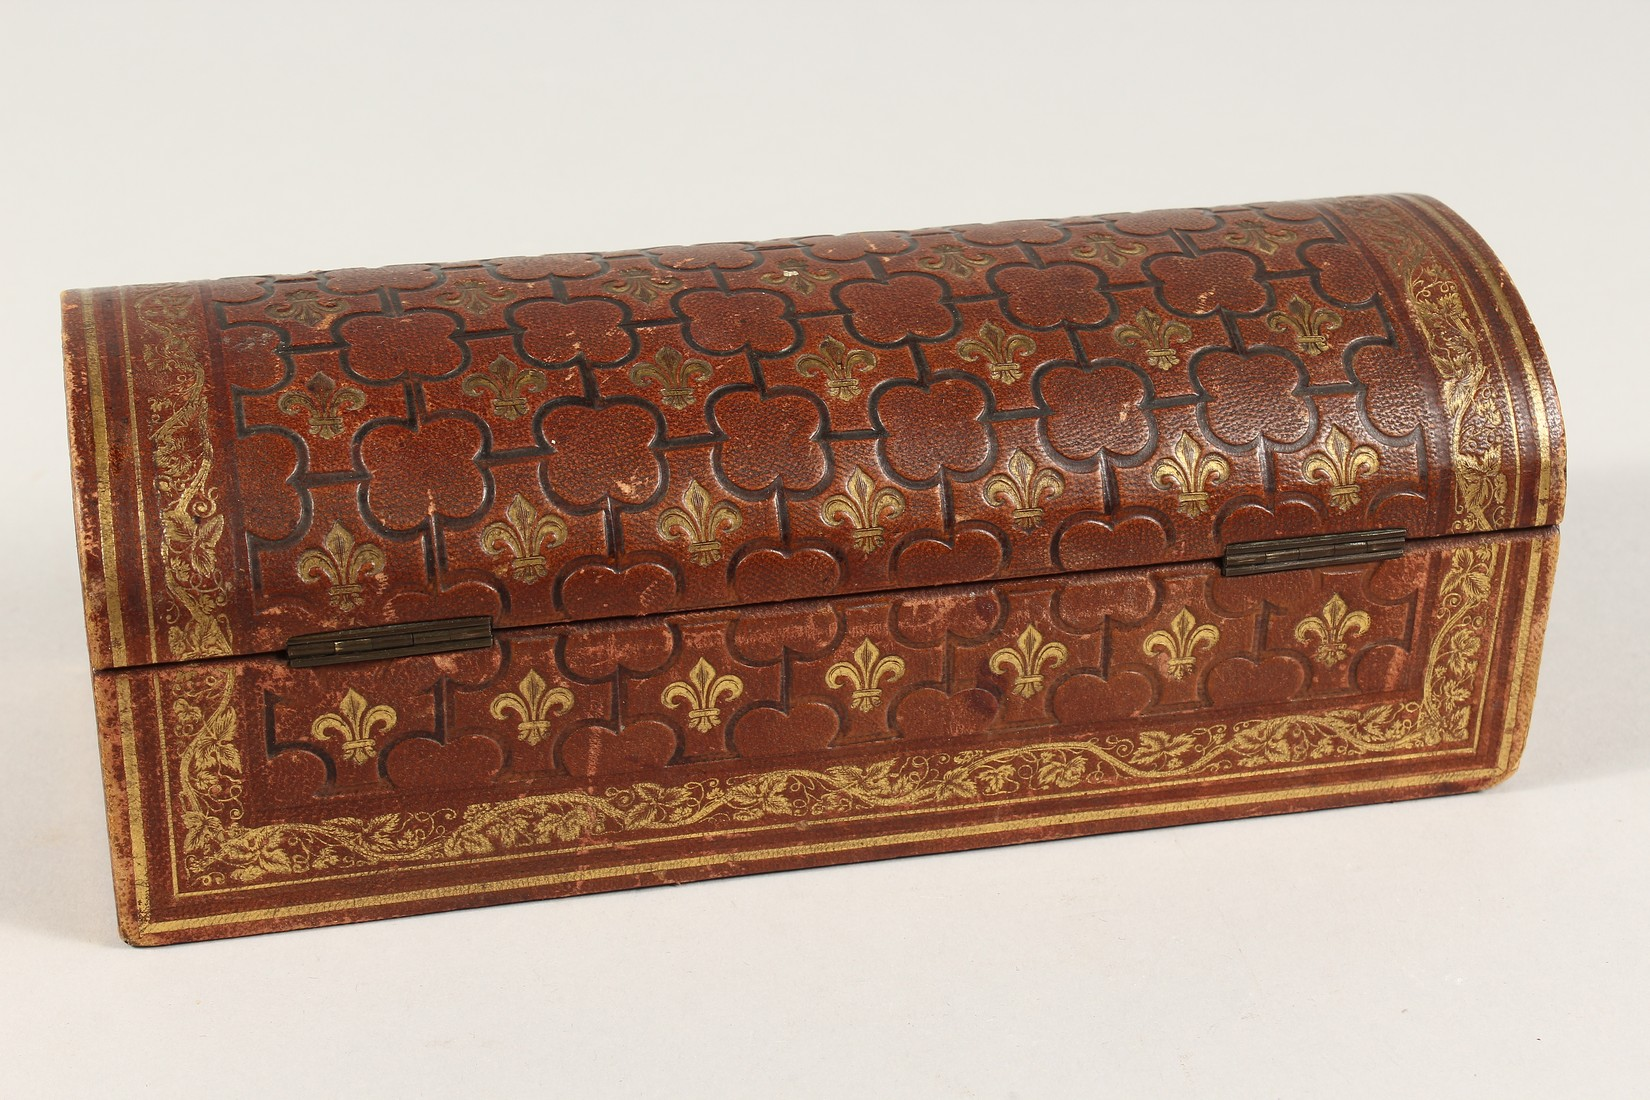 A FRENCH FLEUR D LYS DOMED LEATHER BOX 9.5ins long - Image 3 of 5